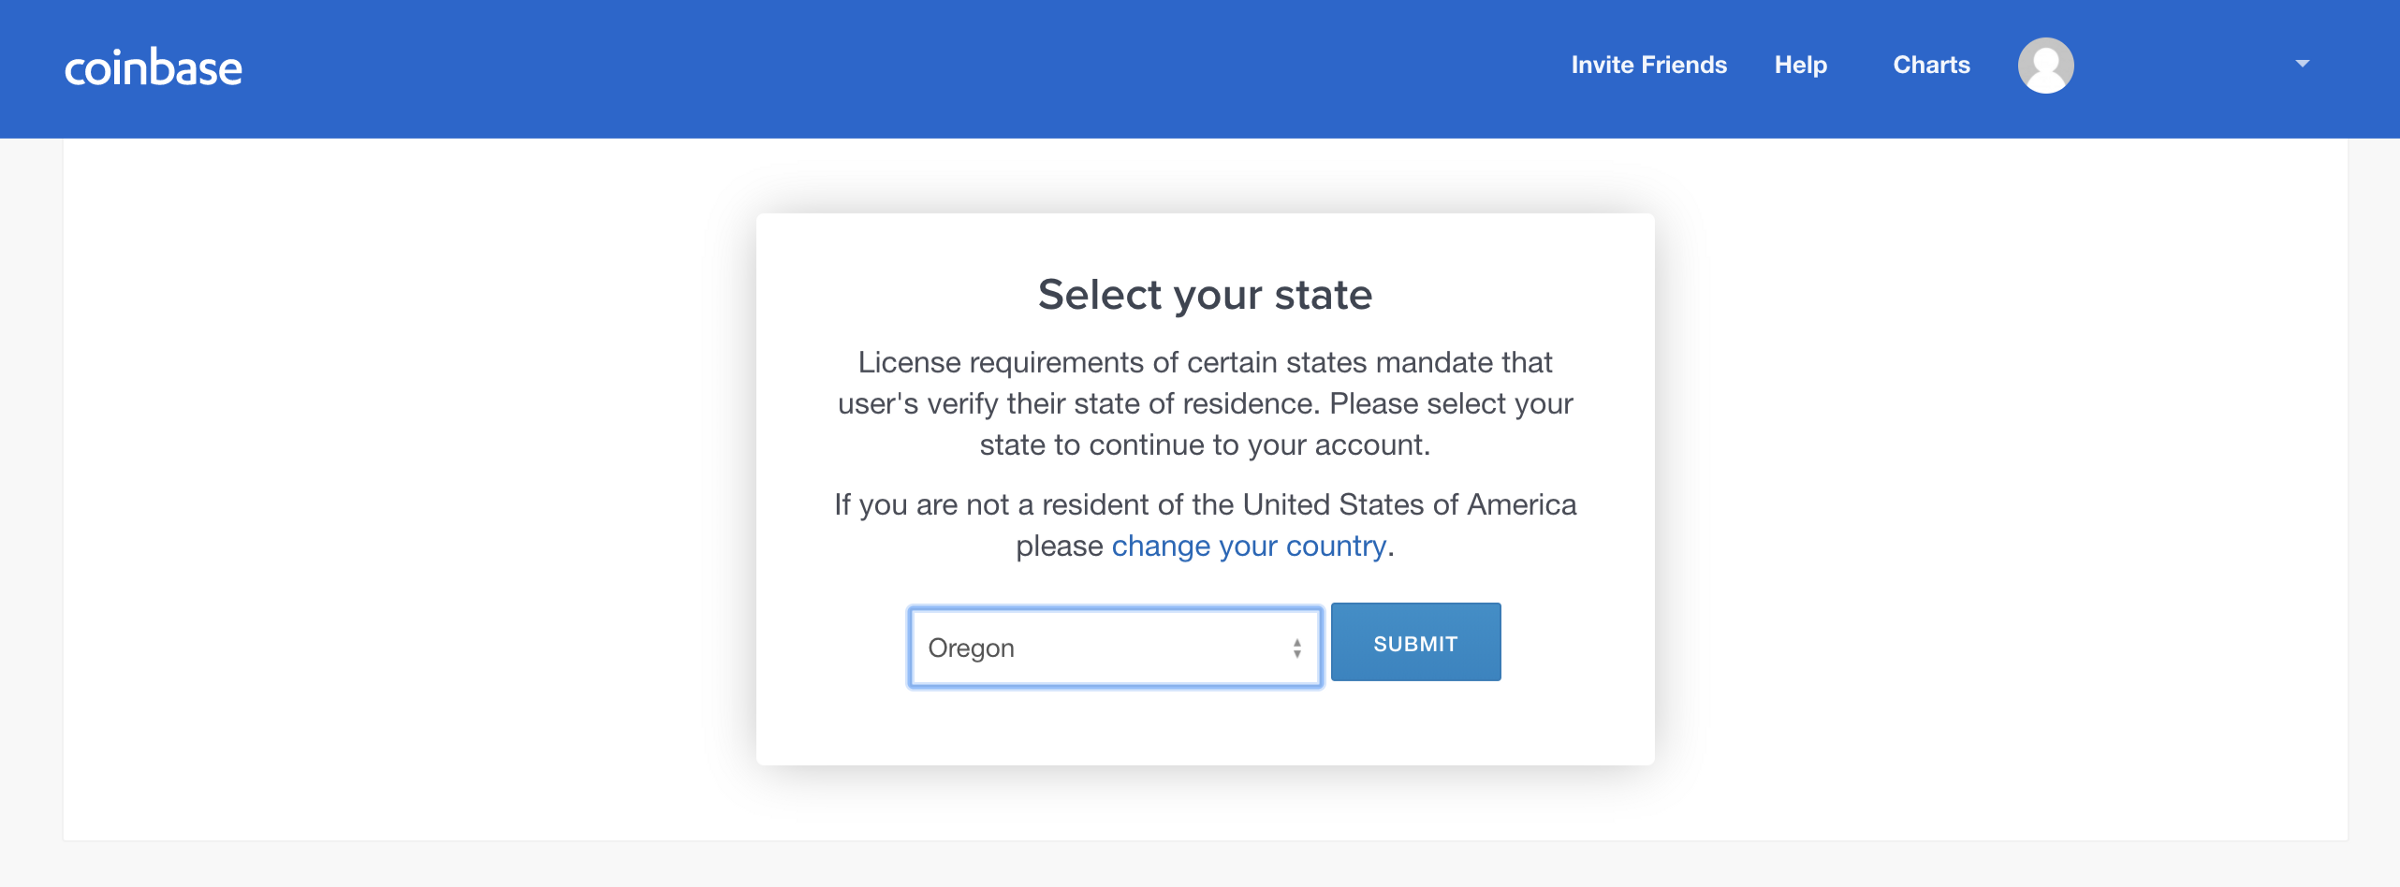 coinbase exchange is not yet available in your state